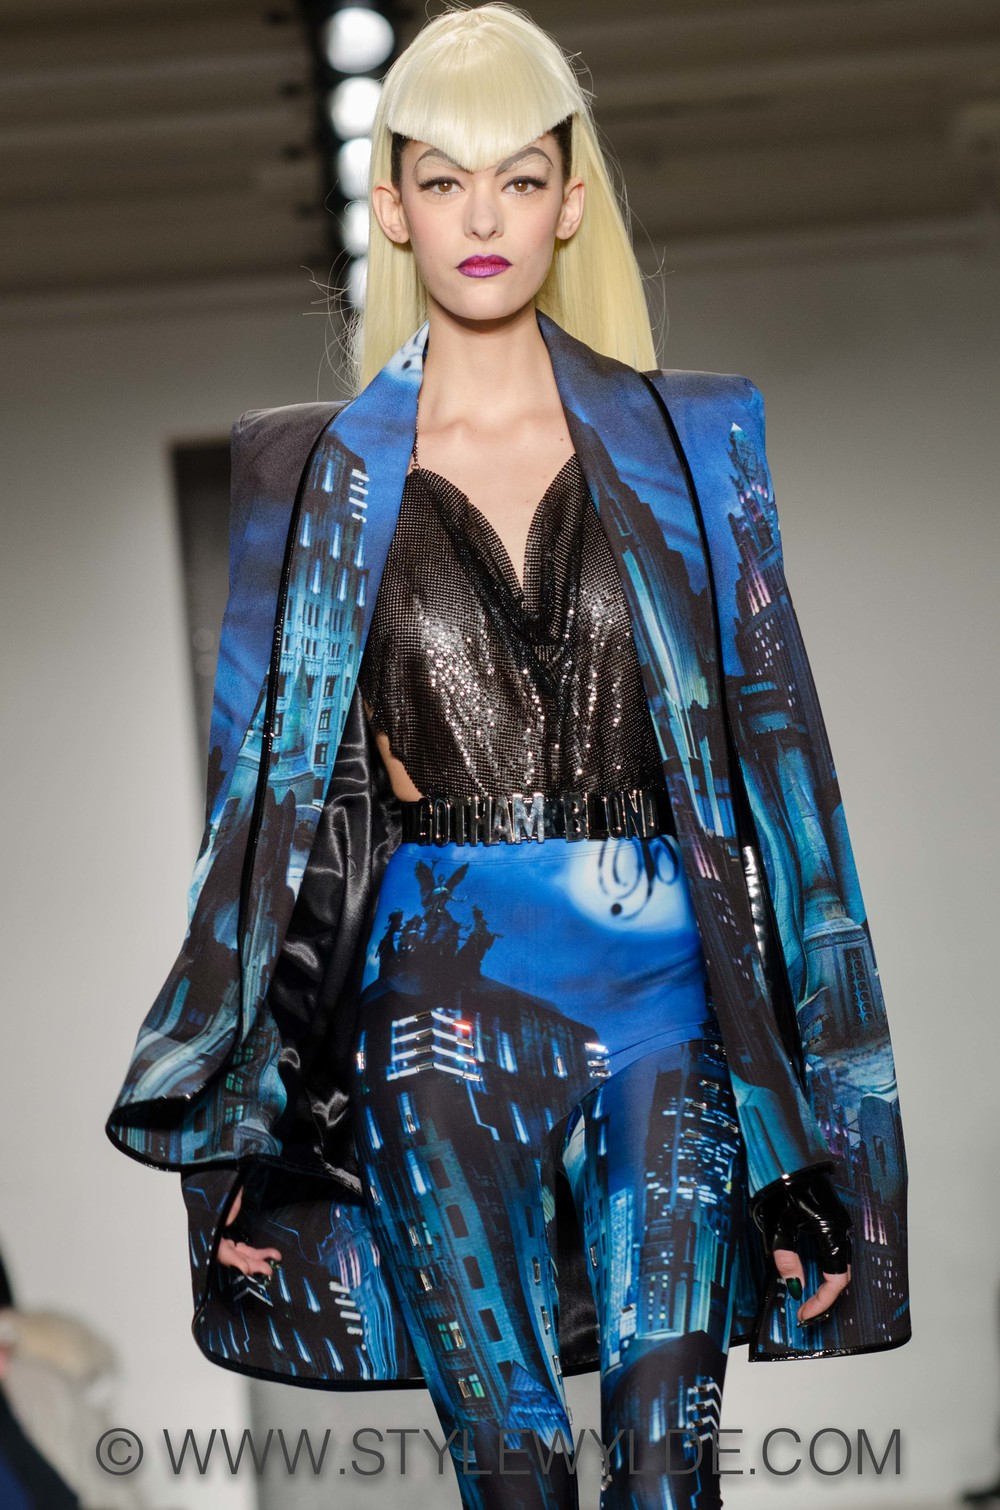 Stylewylde_Blonds_FW2014_FOH_CA (2 of 16).jpg